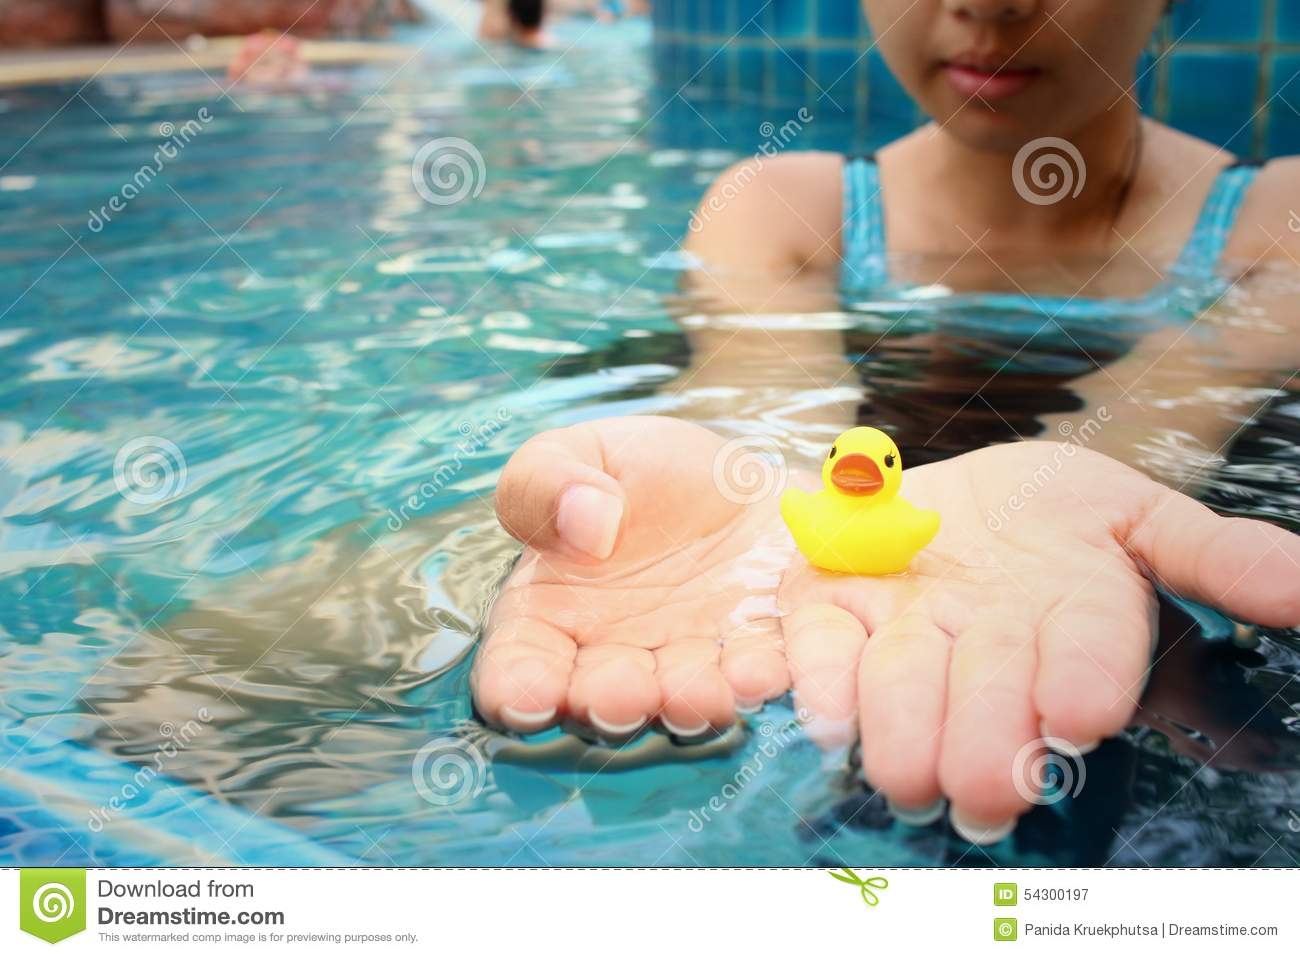 Rubber Swimming Pools : Yellow rubber duck in hands at swimming pool stock image